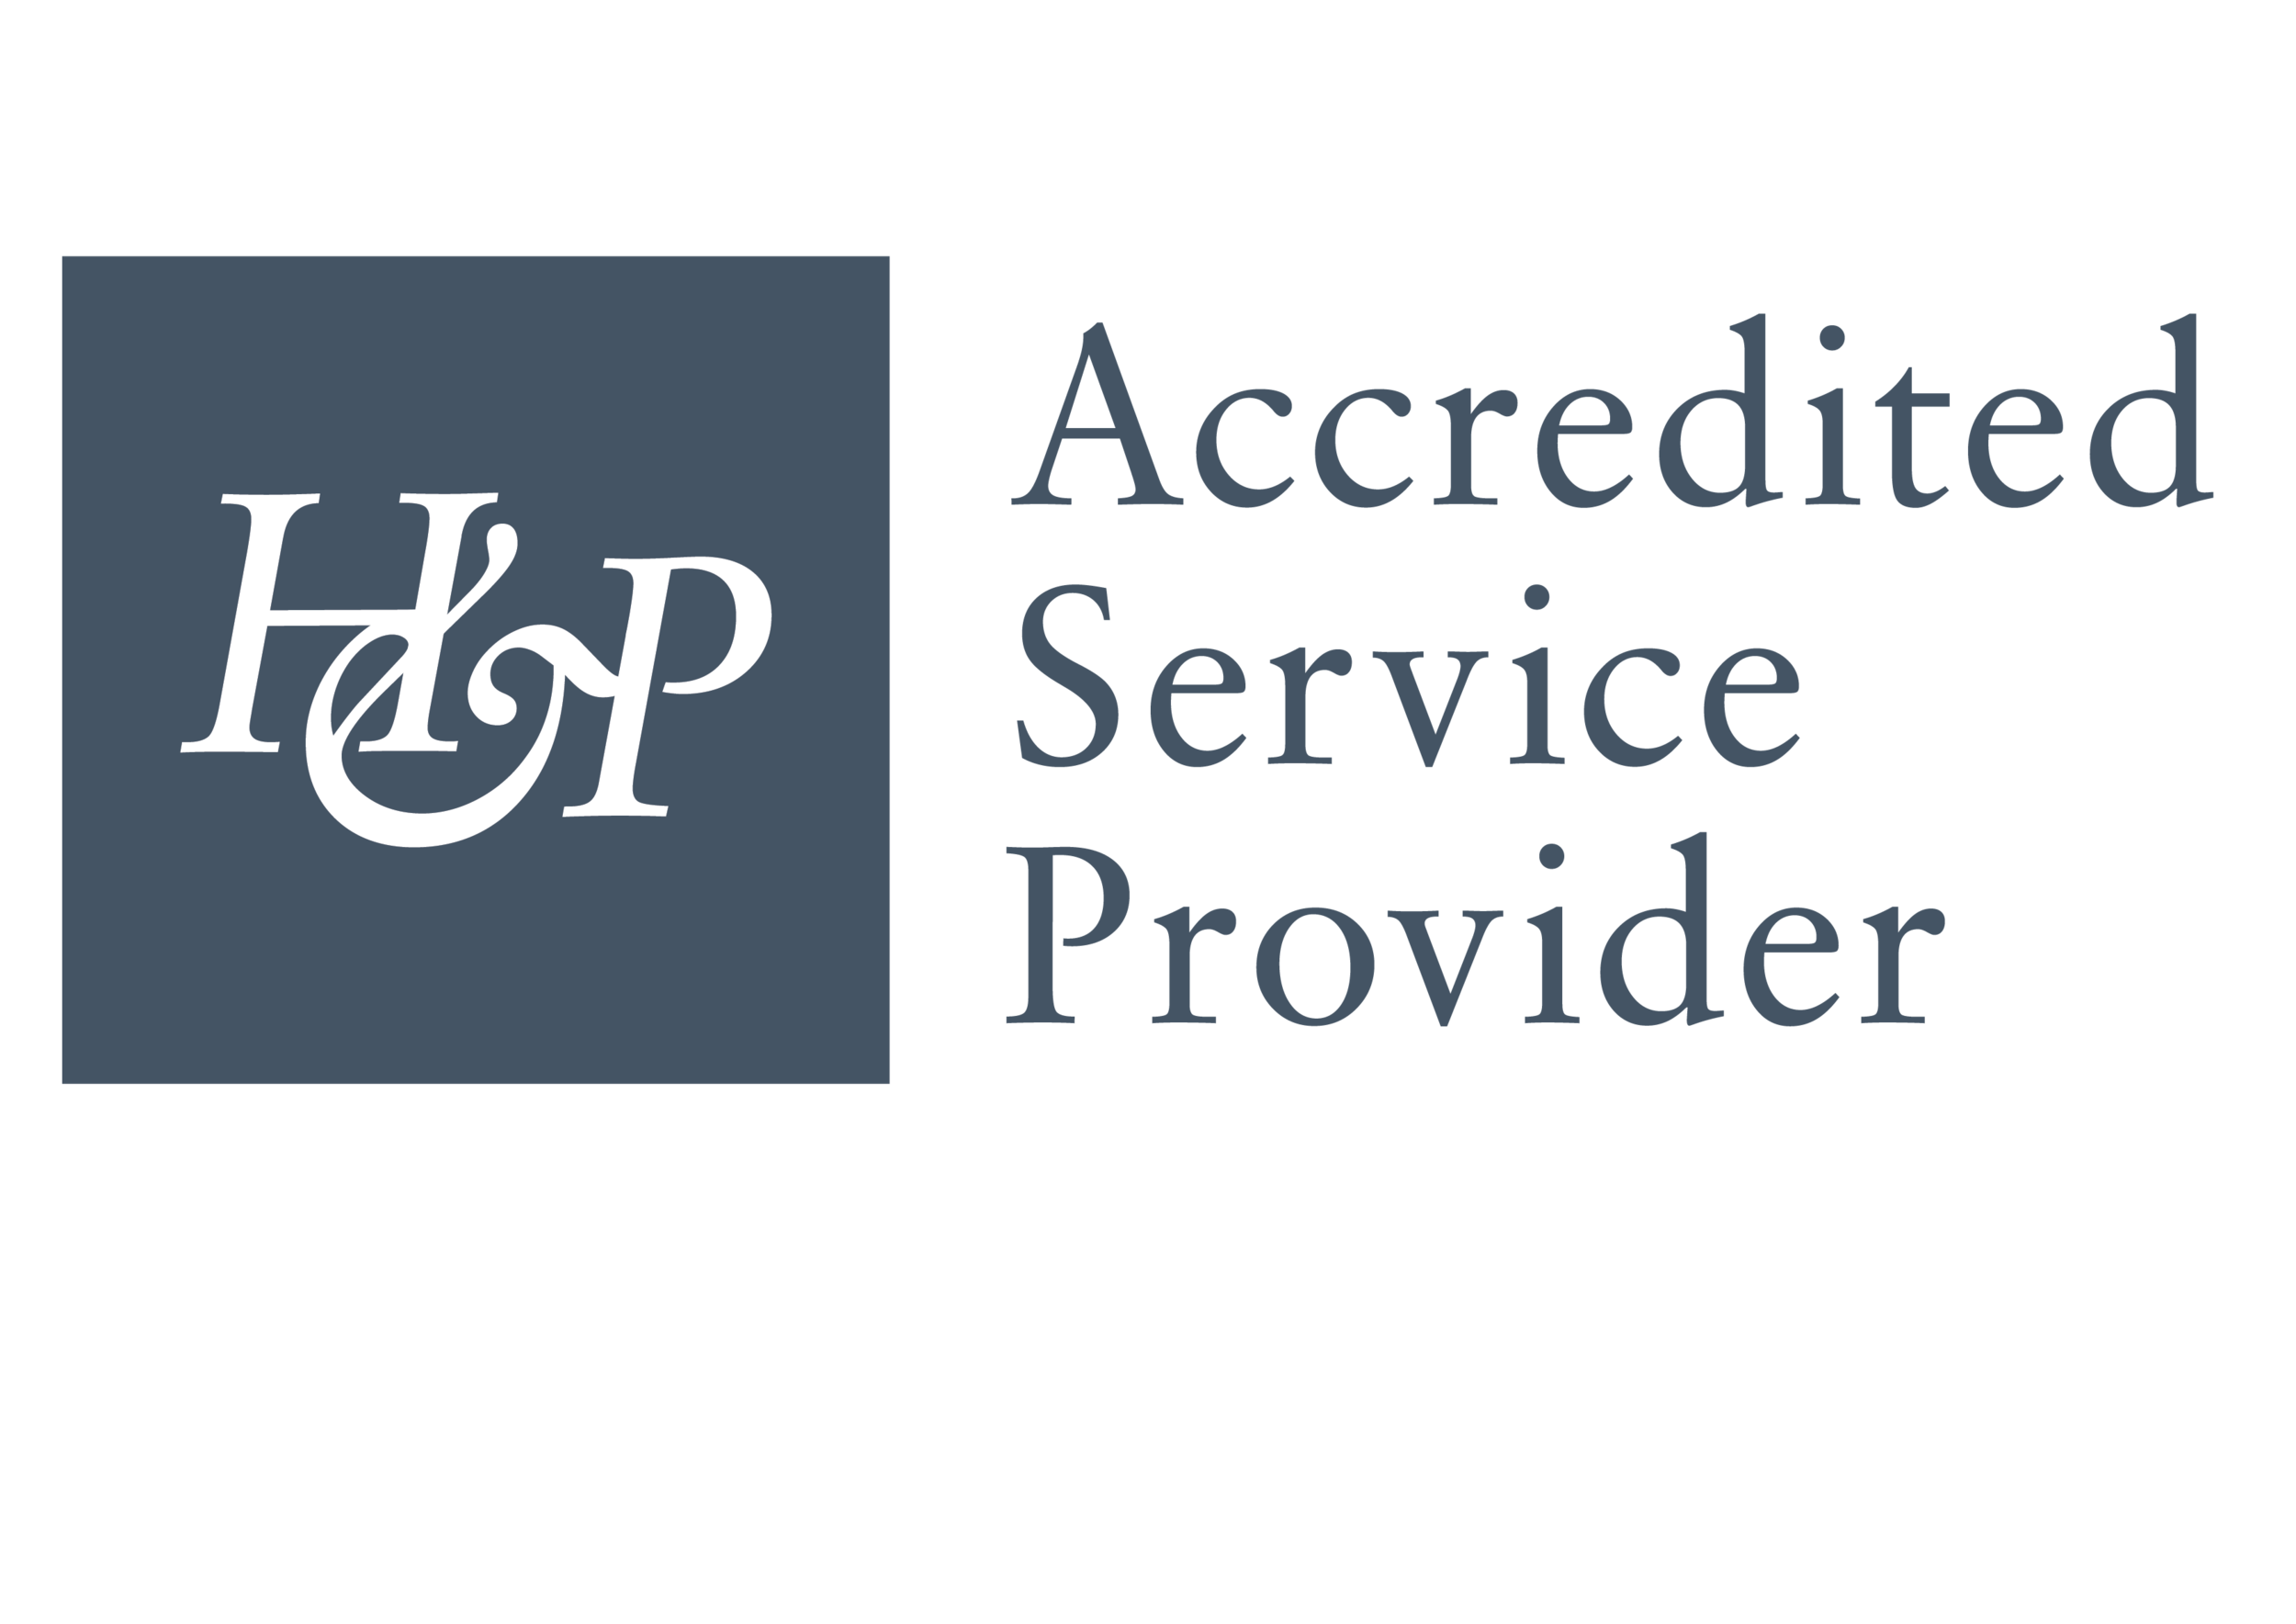 ACCREDITED-SERVICE-PROIVIDER-LOGO-01.png